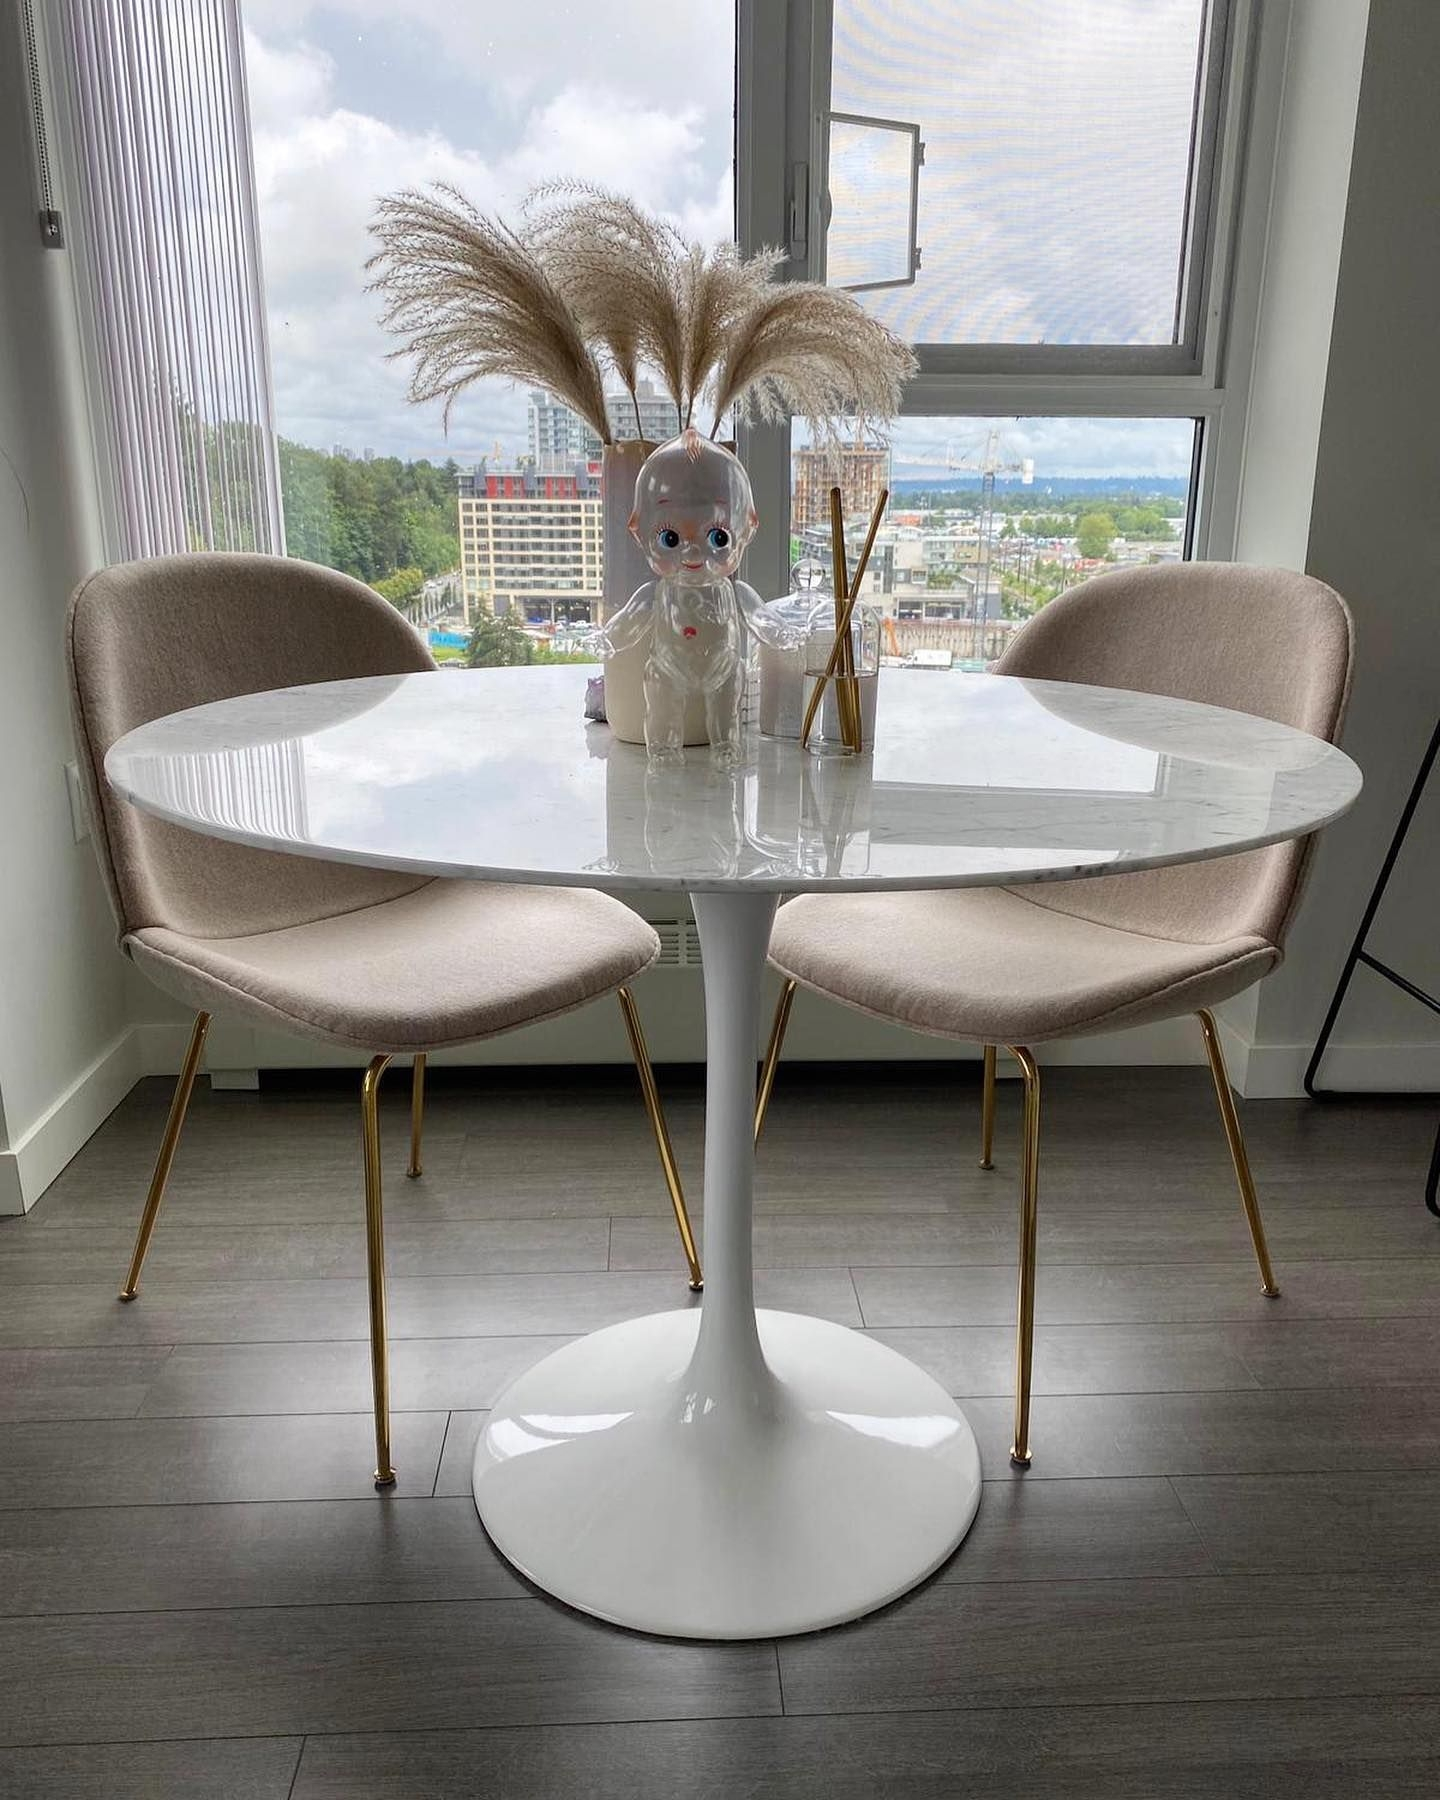 Appealing Coffee Table with Chairs On